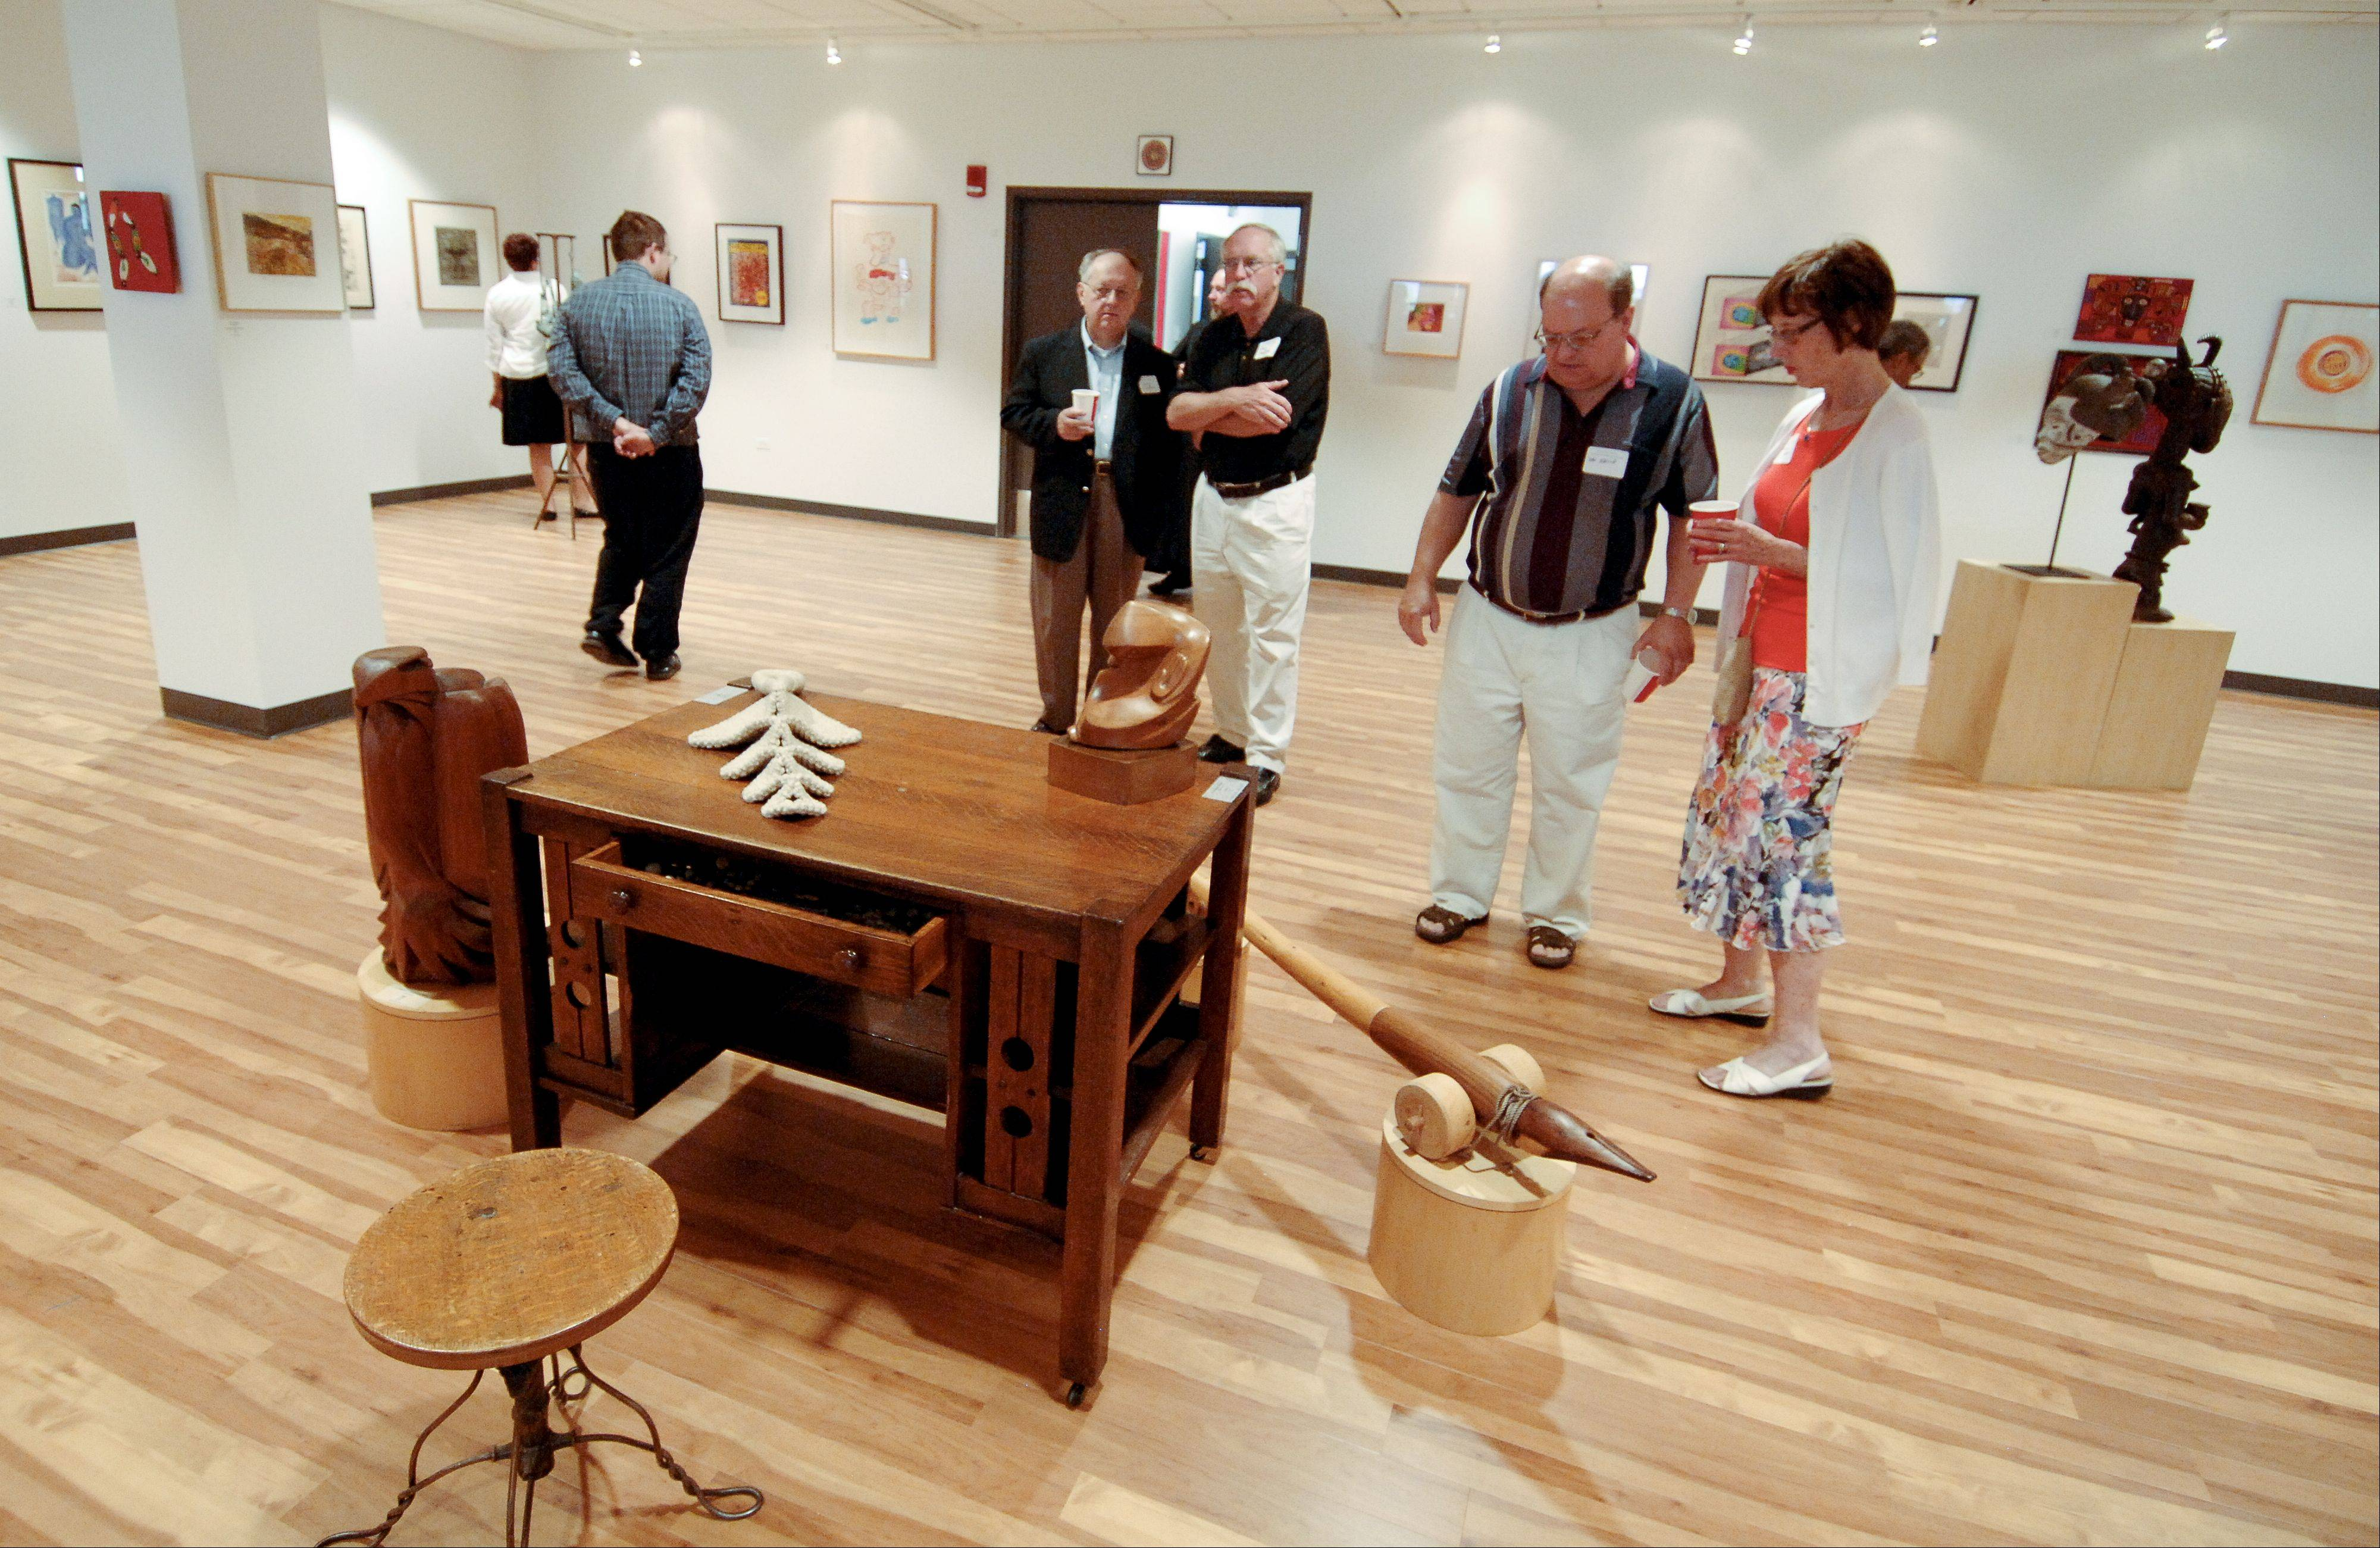 Benedictine University officials on Sunday dedicated the new Fr. Michael E. Komechak Art Gallery in Kindlon Hall of Learning on the school's Lisle campus. Komechak was a passionate supporter of the arts.